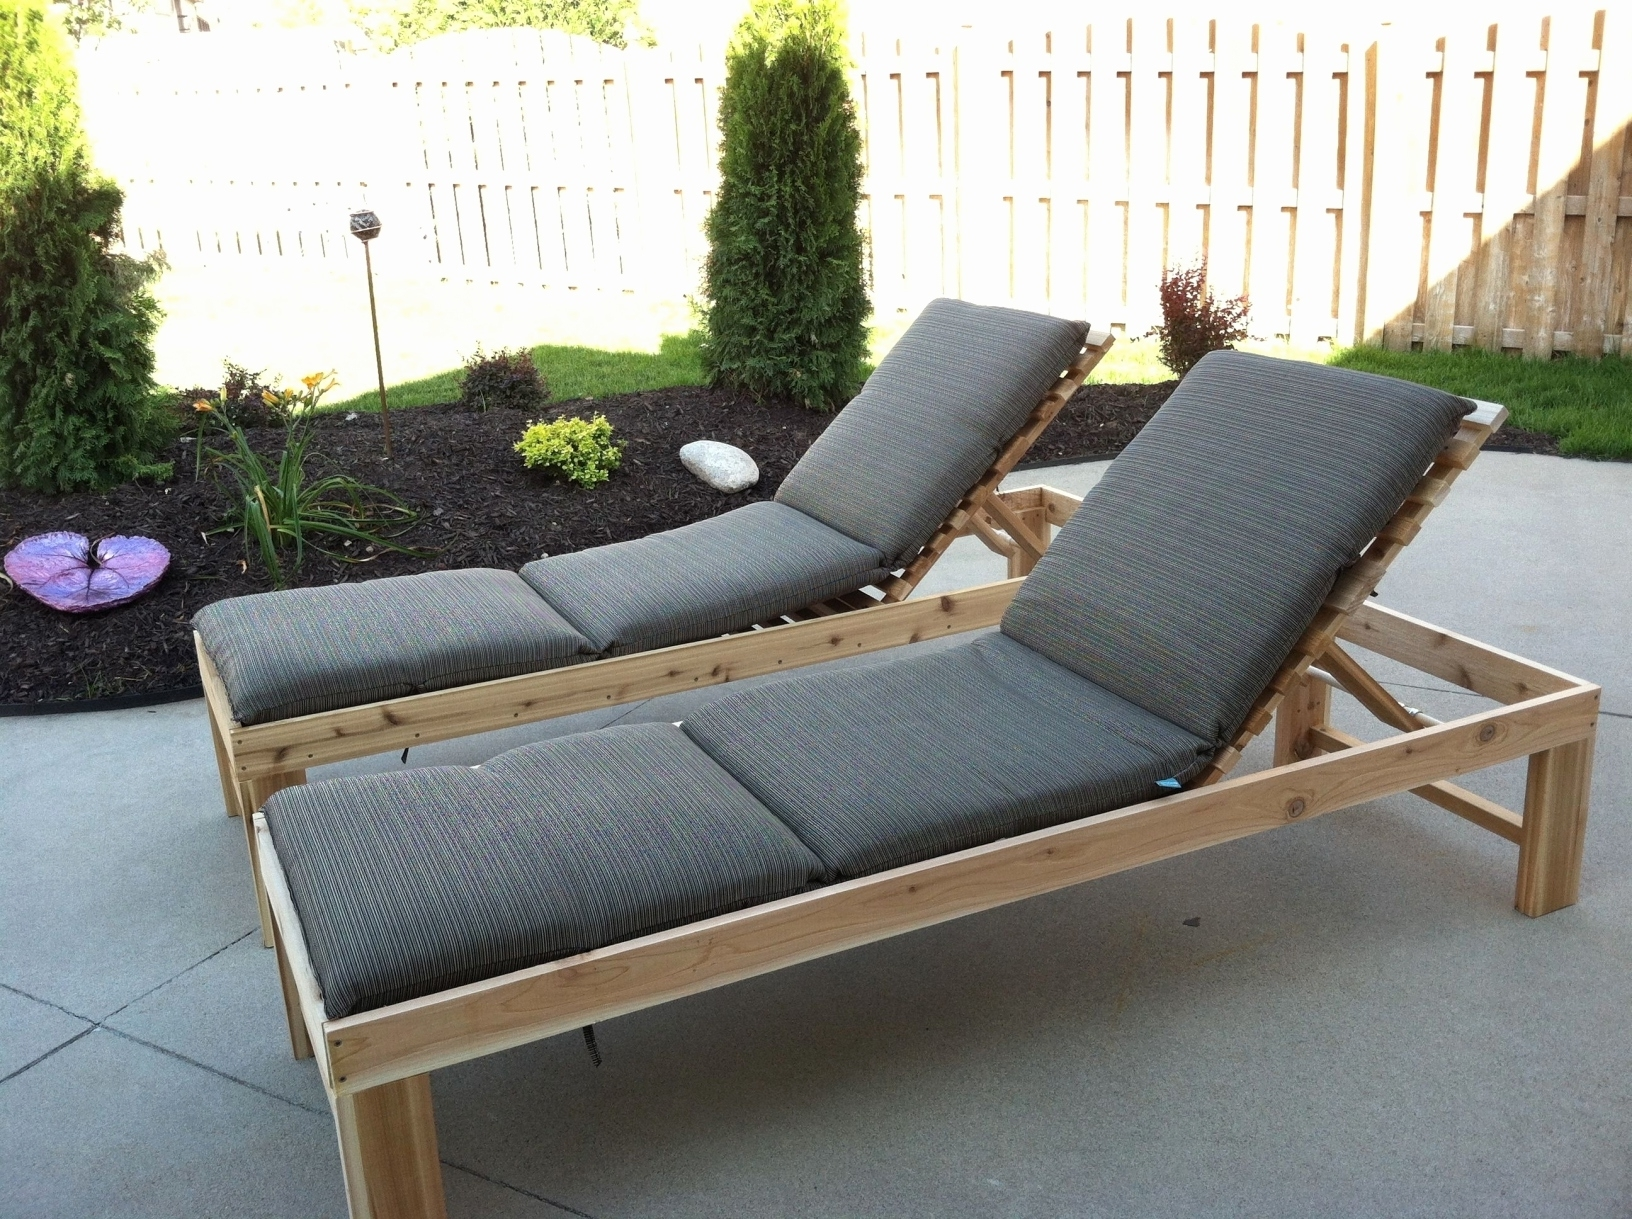 Most Popular Beach Chaise Lounge Chairs Amazing Diy Chaise Lounge Diy Outdoor Intended For Diy Outdoor Chaise Lounge Chairs (View 8 of 15)